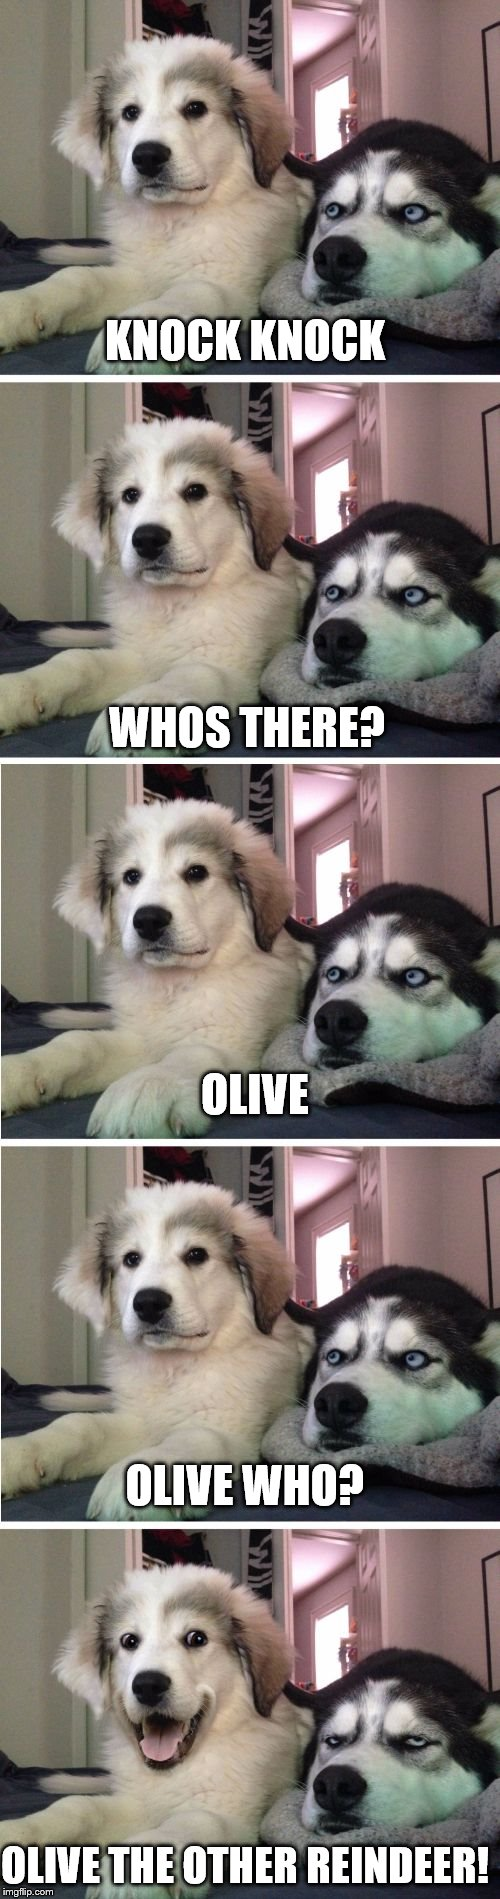 Knock Knock Dogs | KNOCK KNOCK WHOS THERE? OLIVE OLIVE WHO? OLIVE THE OTHER REINDEER! | image tagged in knock knock dogs | made w/ Imgflip meme maker